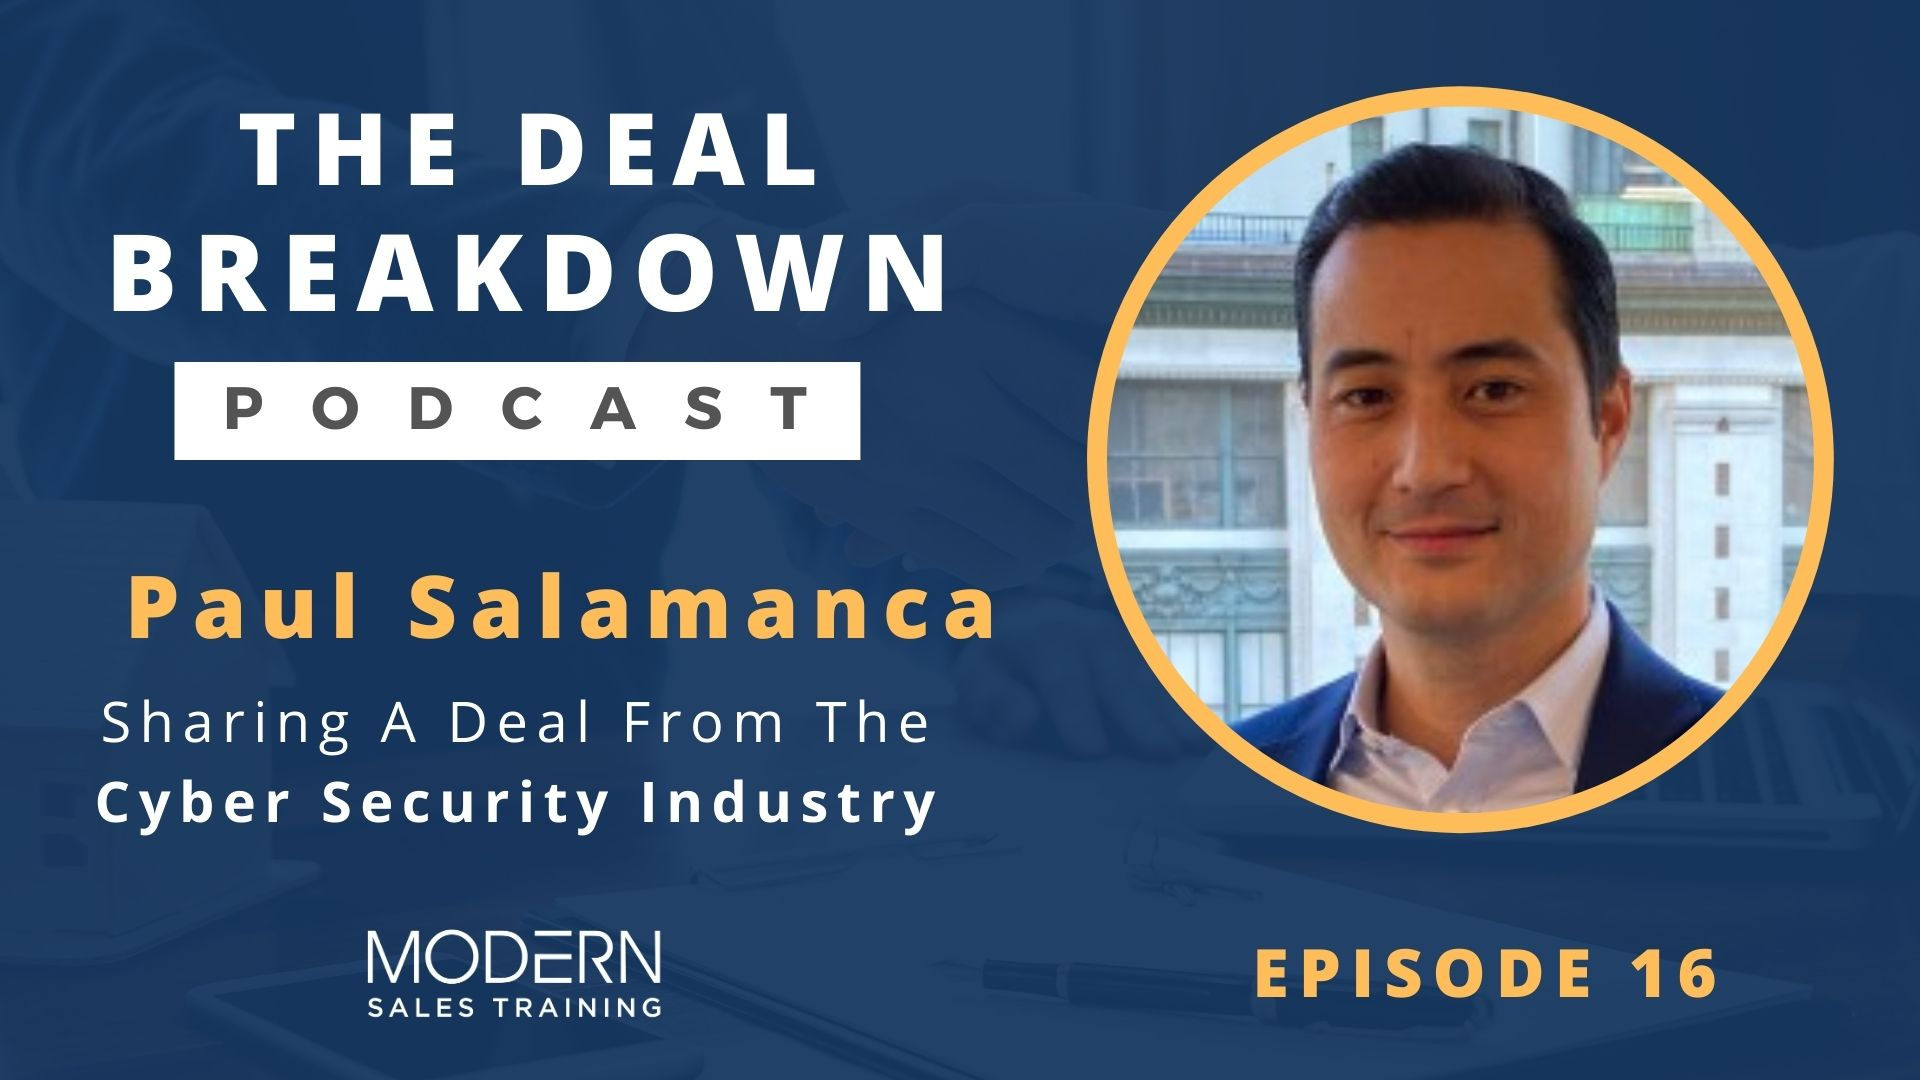 The-Deal-Breakdown-Podcast-Modern-Sales-Training-Paul-Salamanca